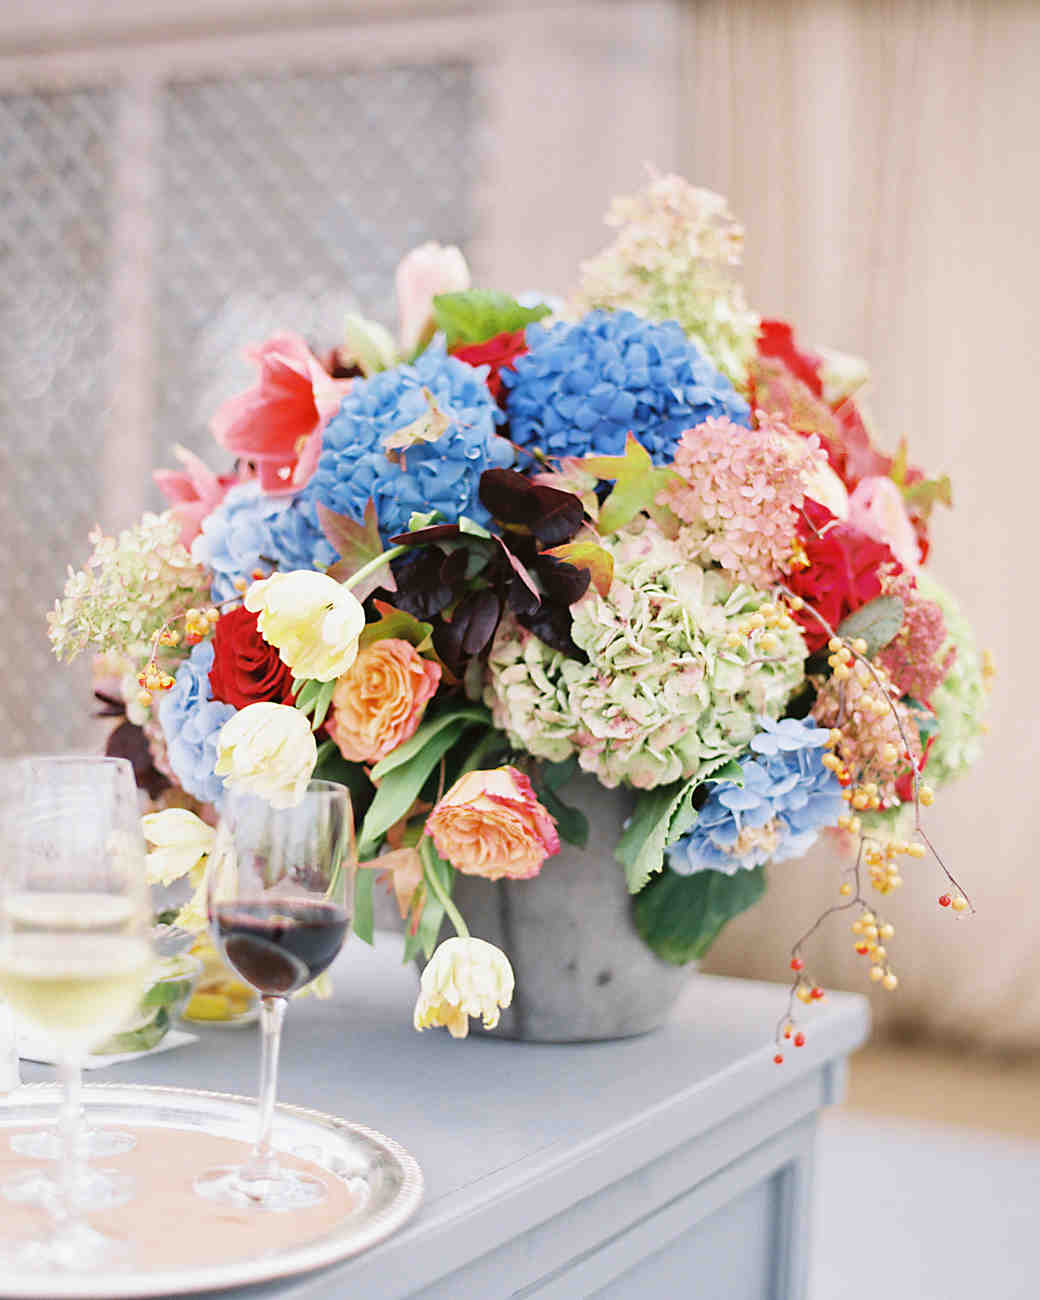 Blue, white and pink hydrangea wedding centerpiece